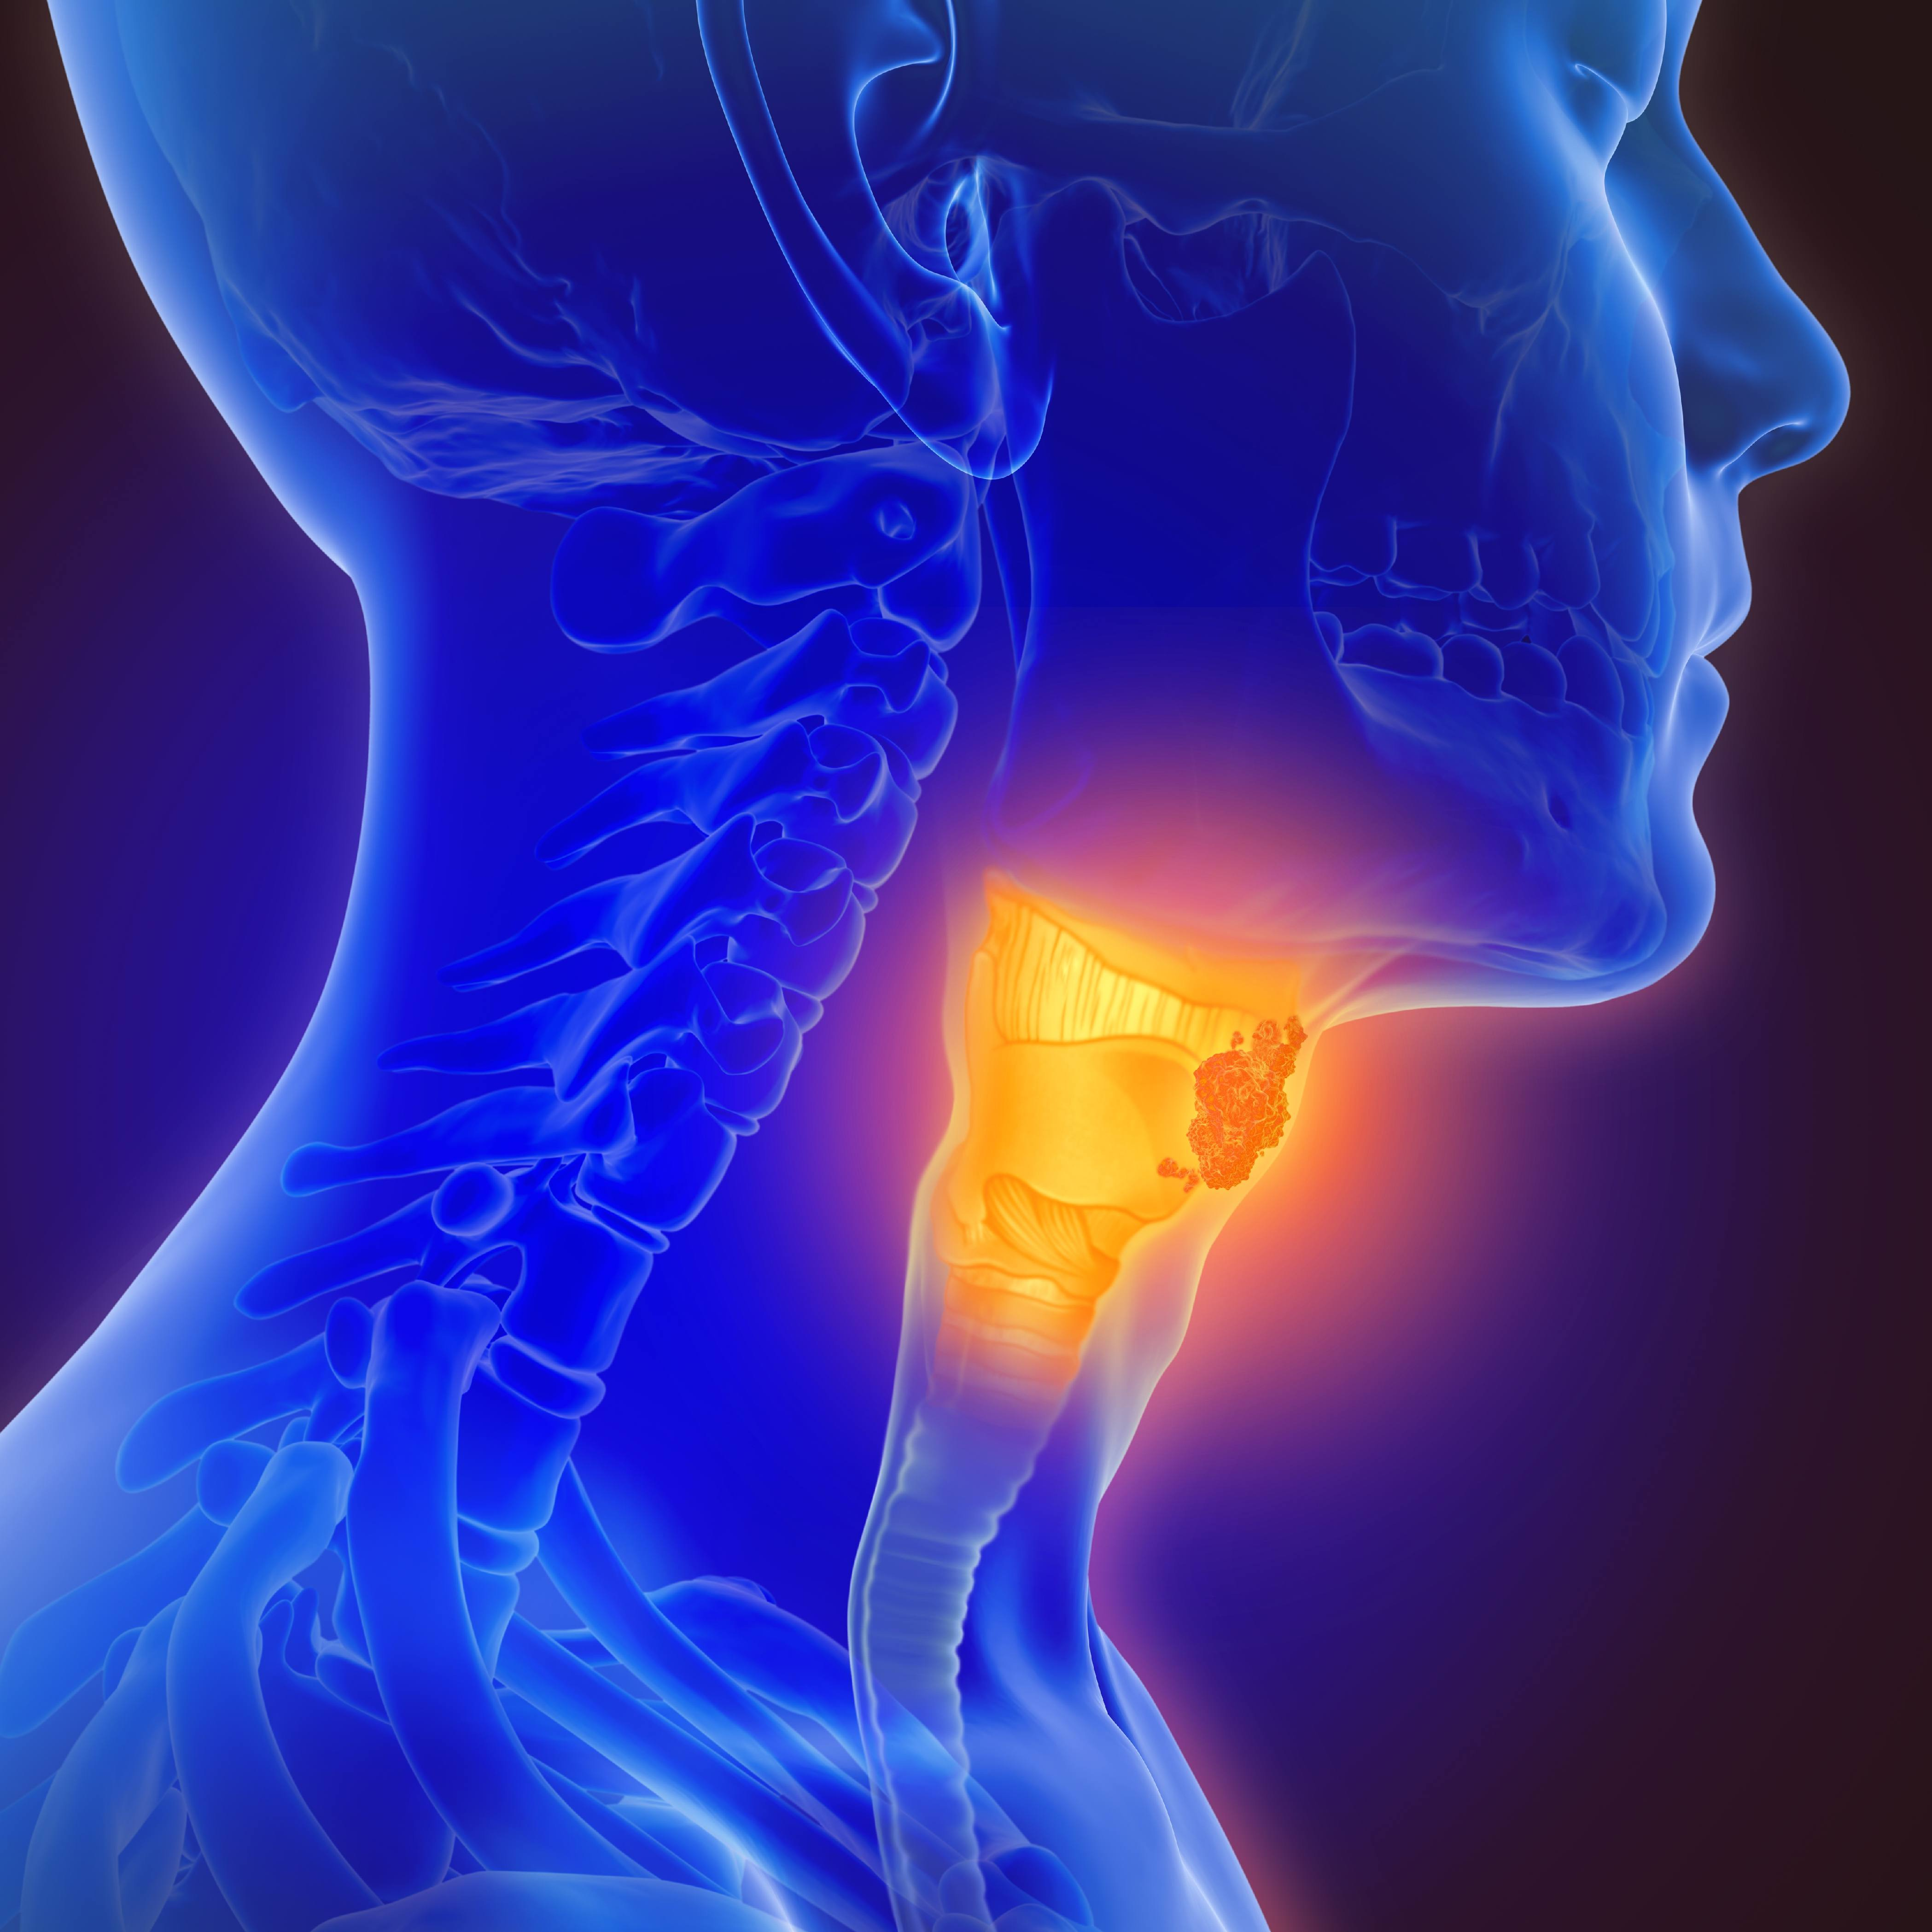 3D graphic image of person with HPV associated oropharynx cancer